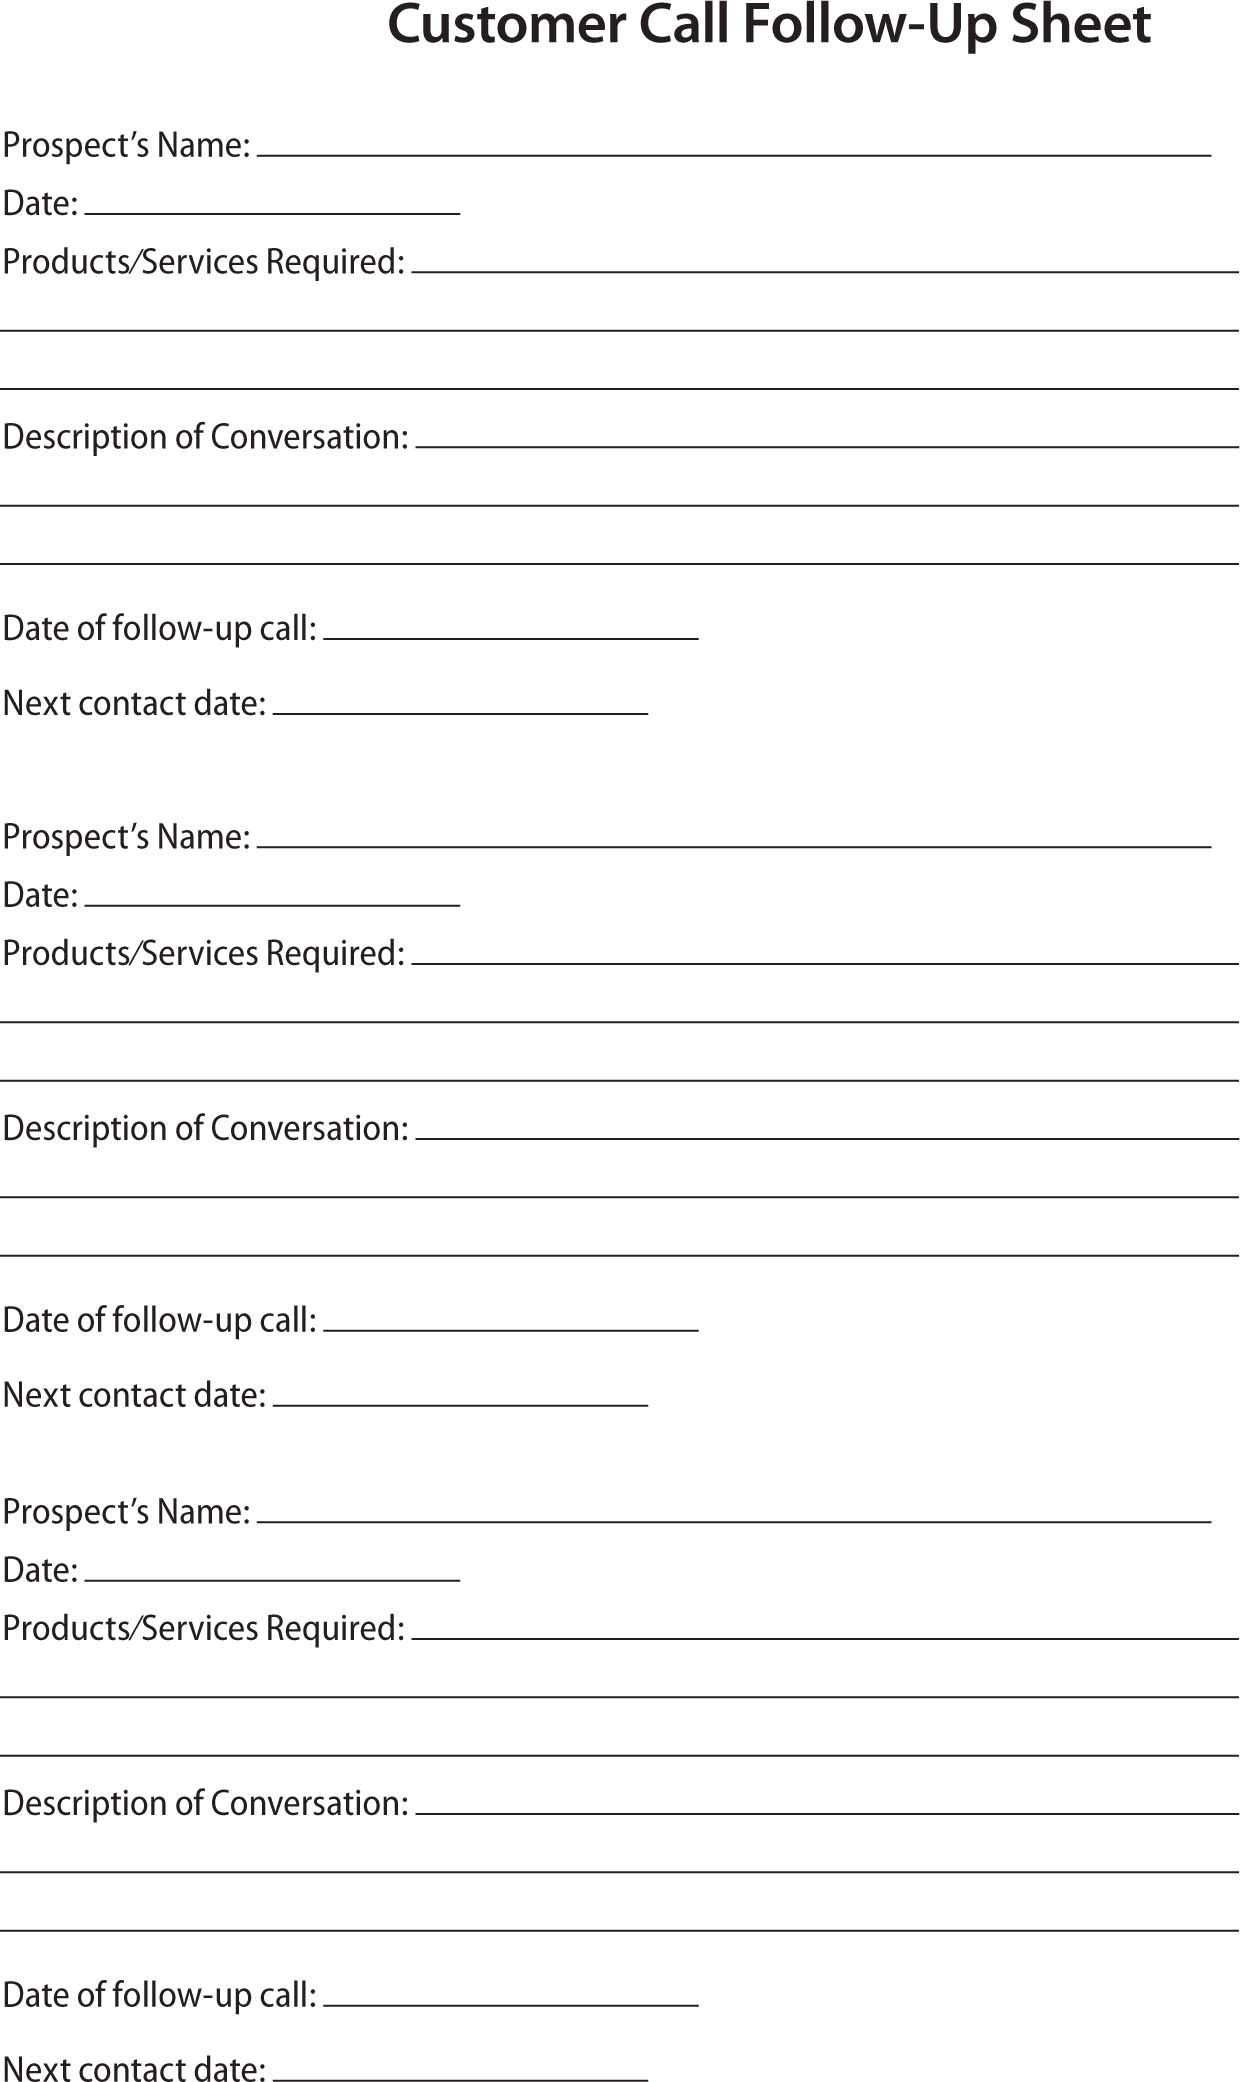 Prospect Sheet Customer Call Follow Up  Call Sheet